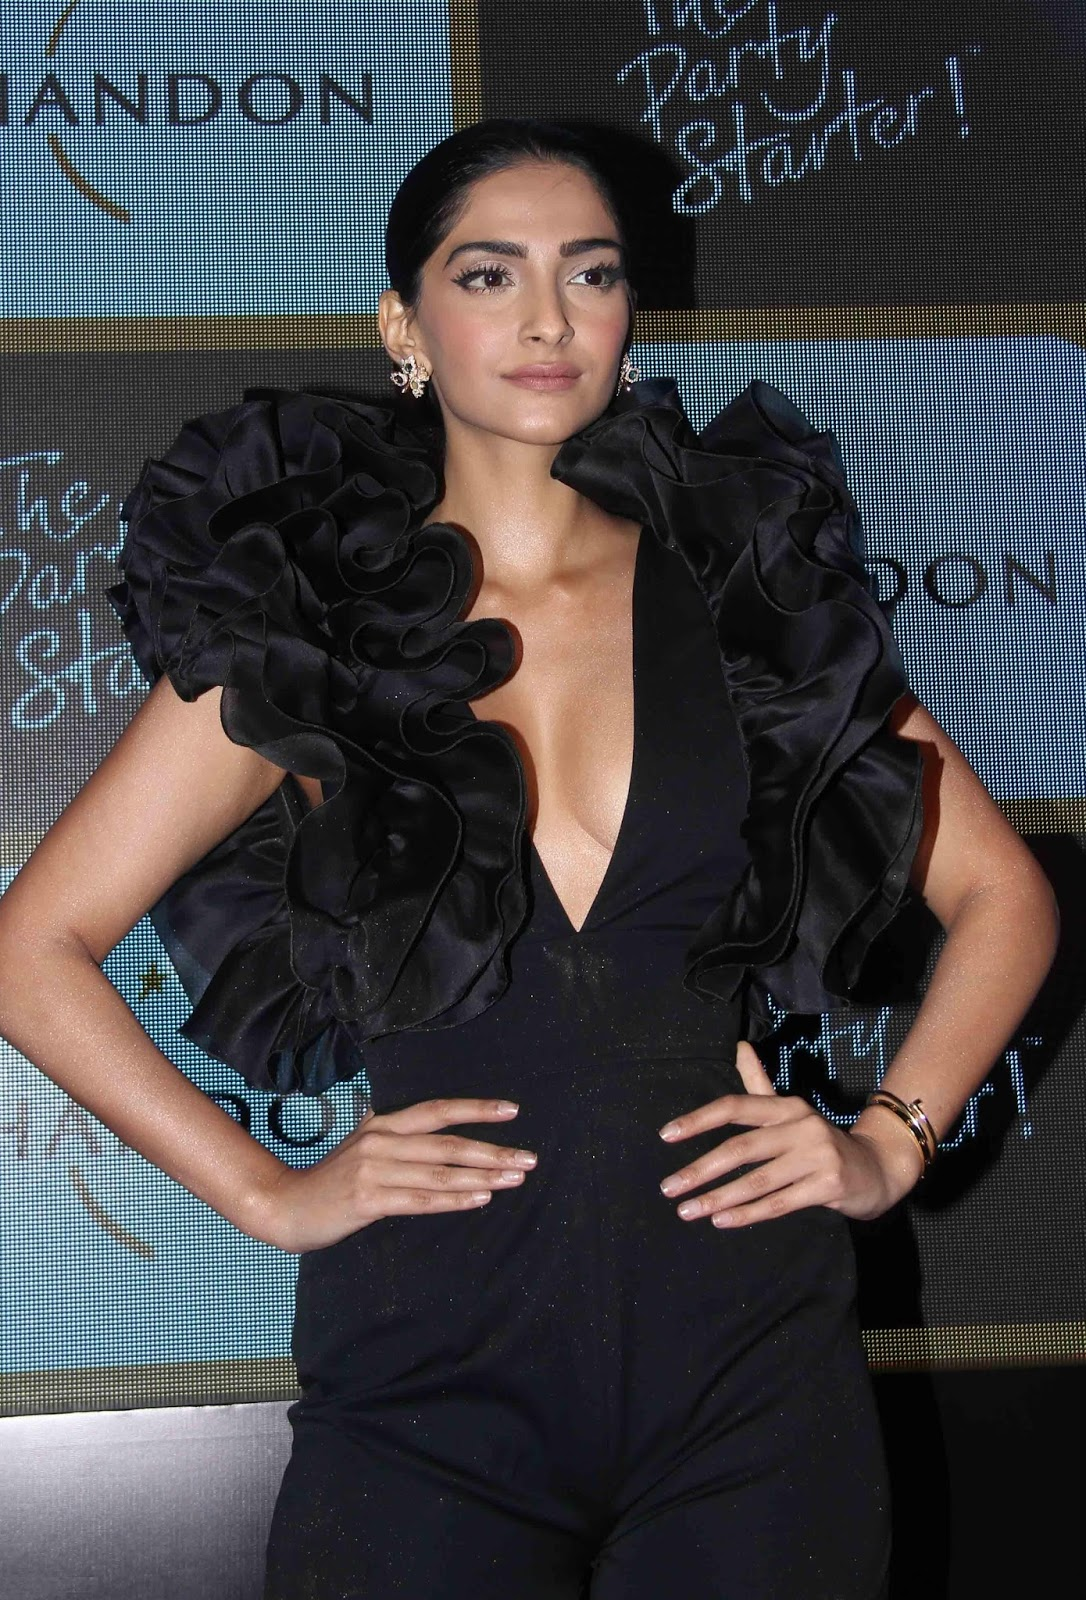 High Quality Bollywood Celebrity Pictures Sonam Kapoor -3300